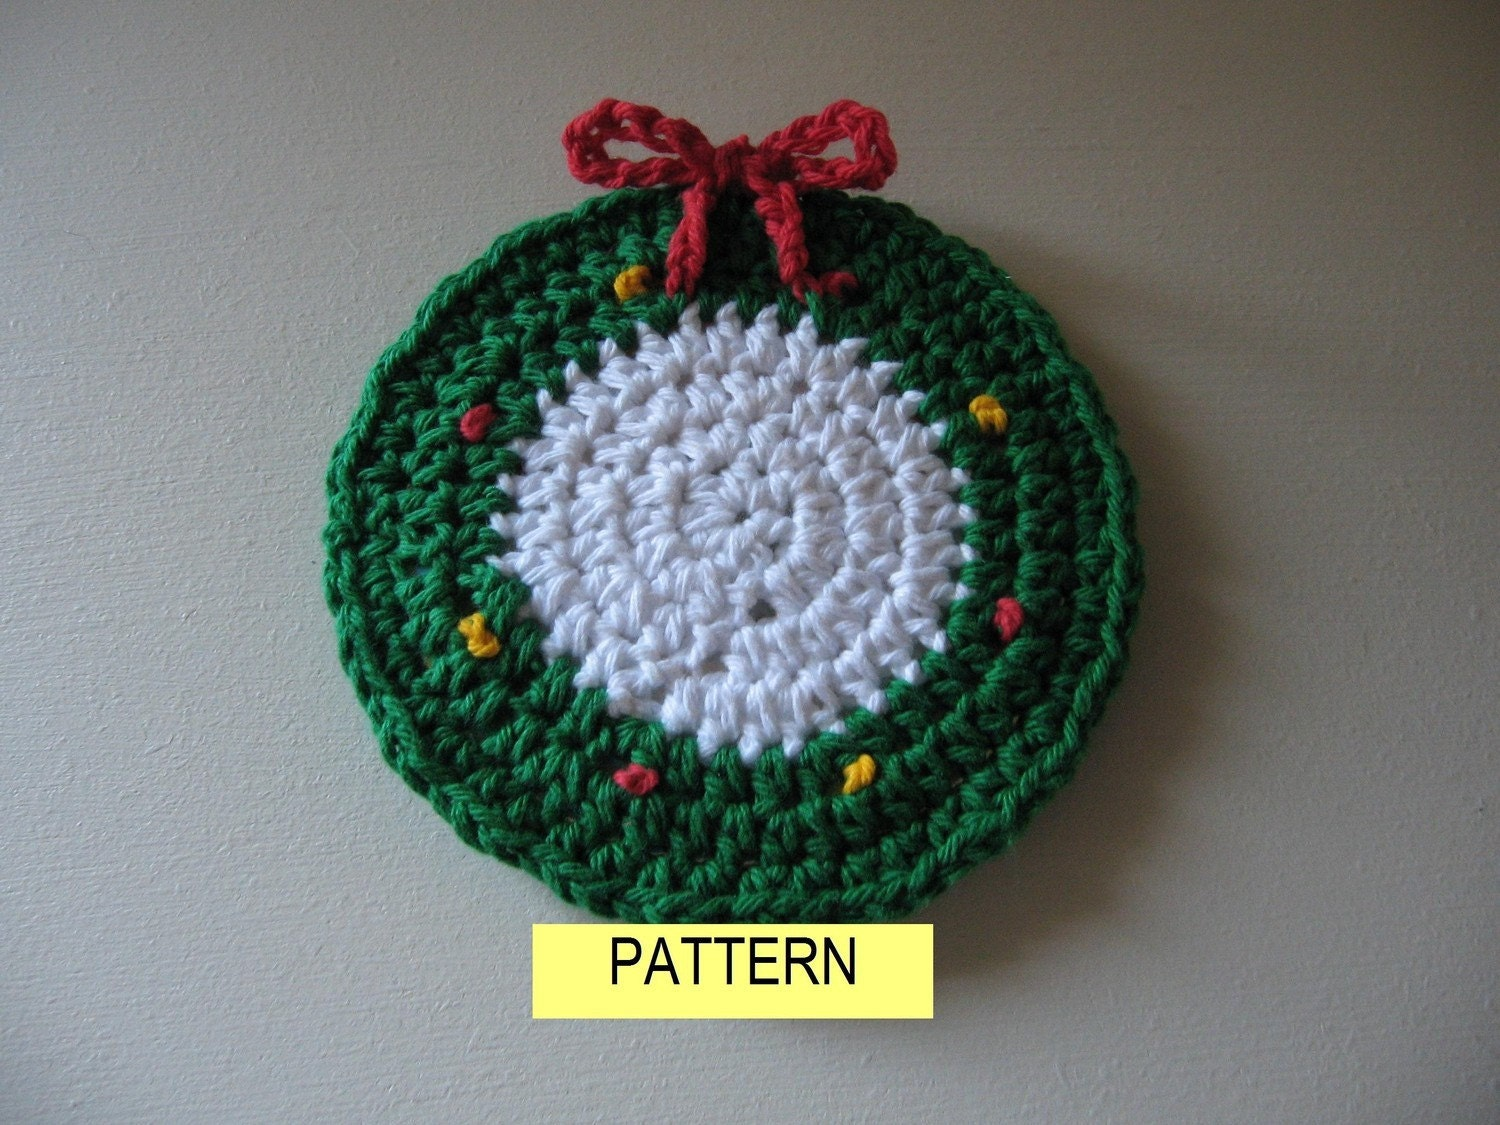 COASTER PATTERN / Holiday Wreath Crochet by CROCHETBYMELISSA